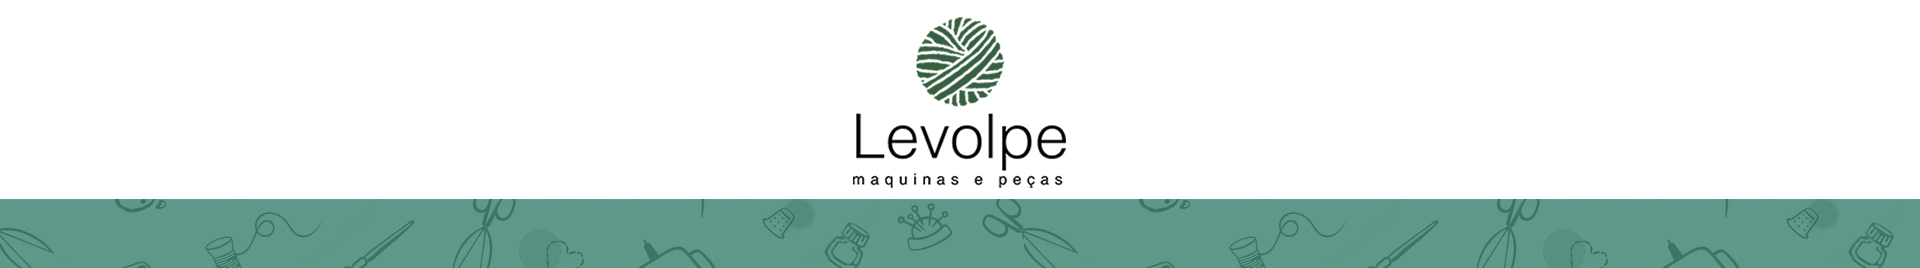 Levolpe